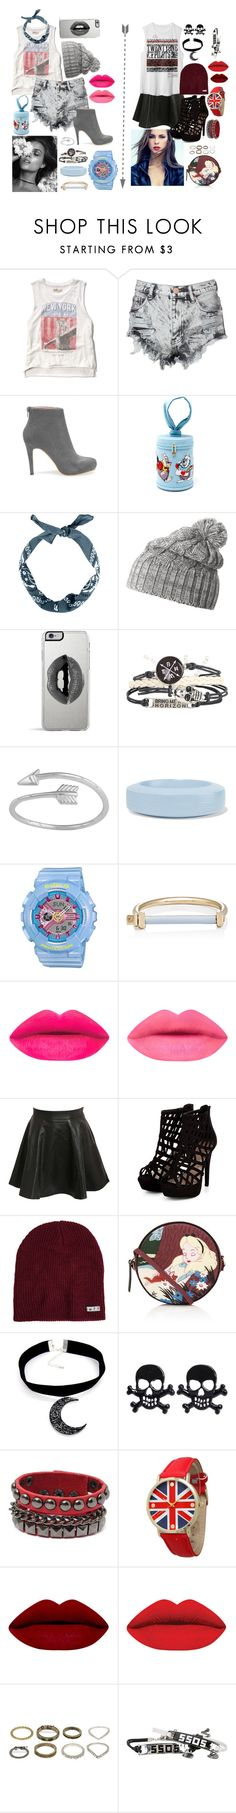 """""""Couple set (1)"""" by hien-anhhs on Polyvore featuring Abercrombie & Fitch, Glamorous, Olympia Le-Tan, Helly Hansen, Lipsy, MM6 Maison Margiela, G-Shock, MIANSAI, Pilot and Neff"""